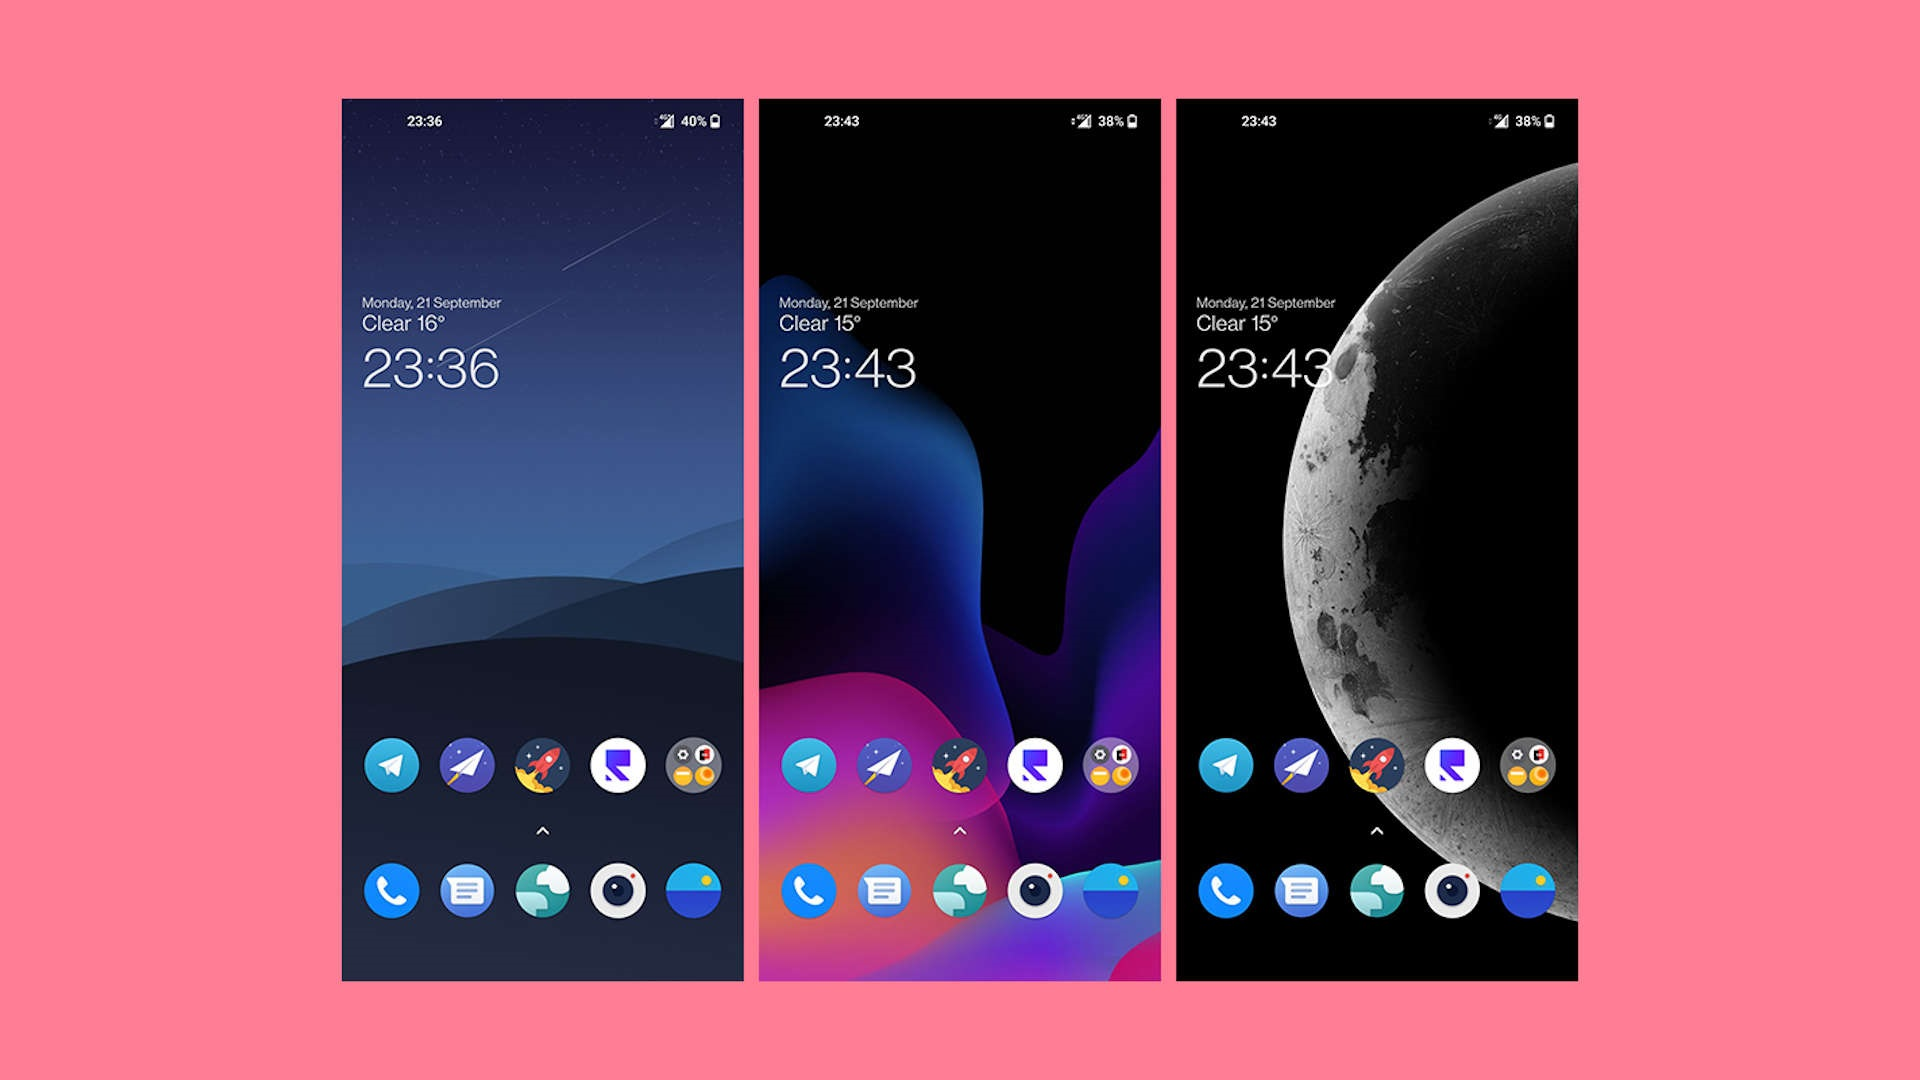 How To Install Oppo S Coloros Live Wallpaper On Any Android Download Gizchina It